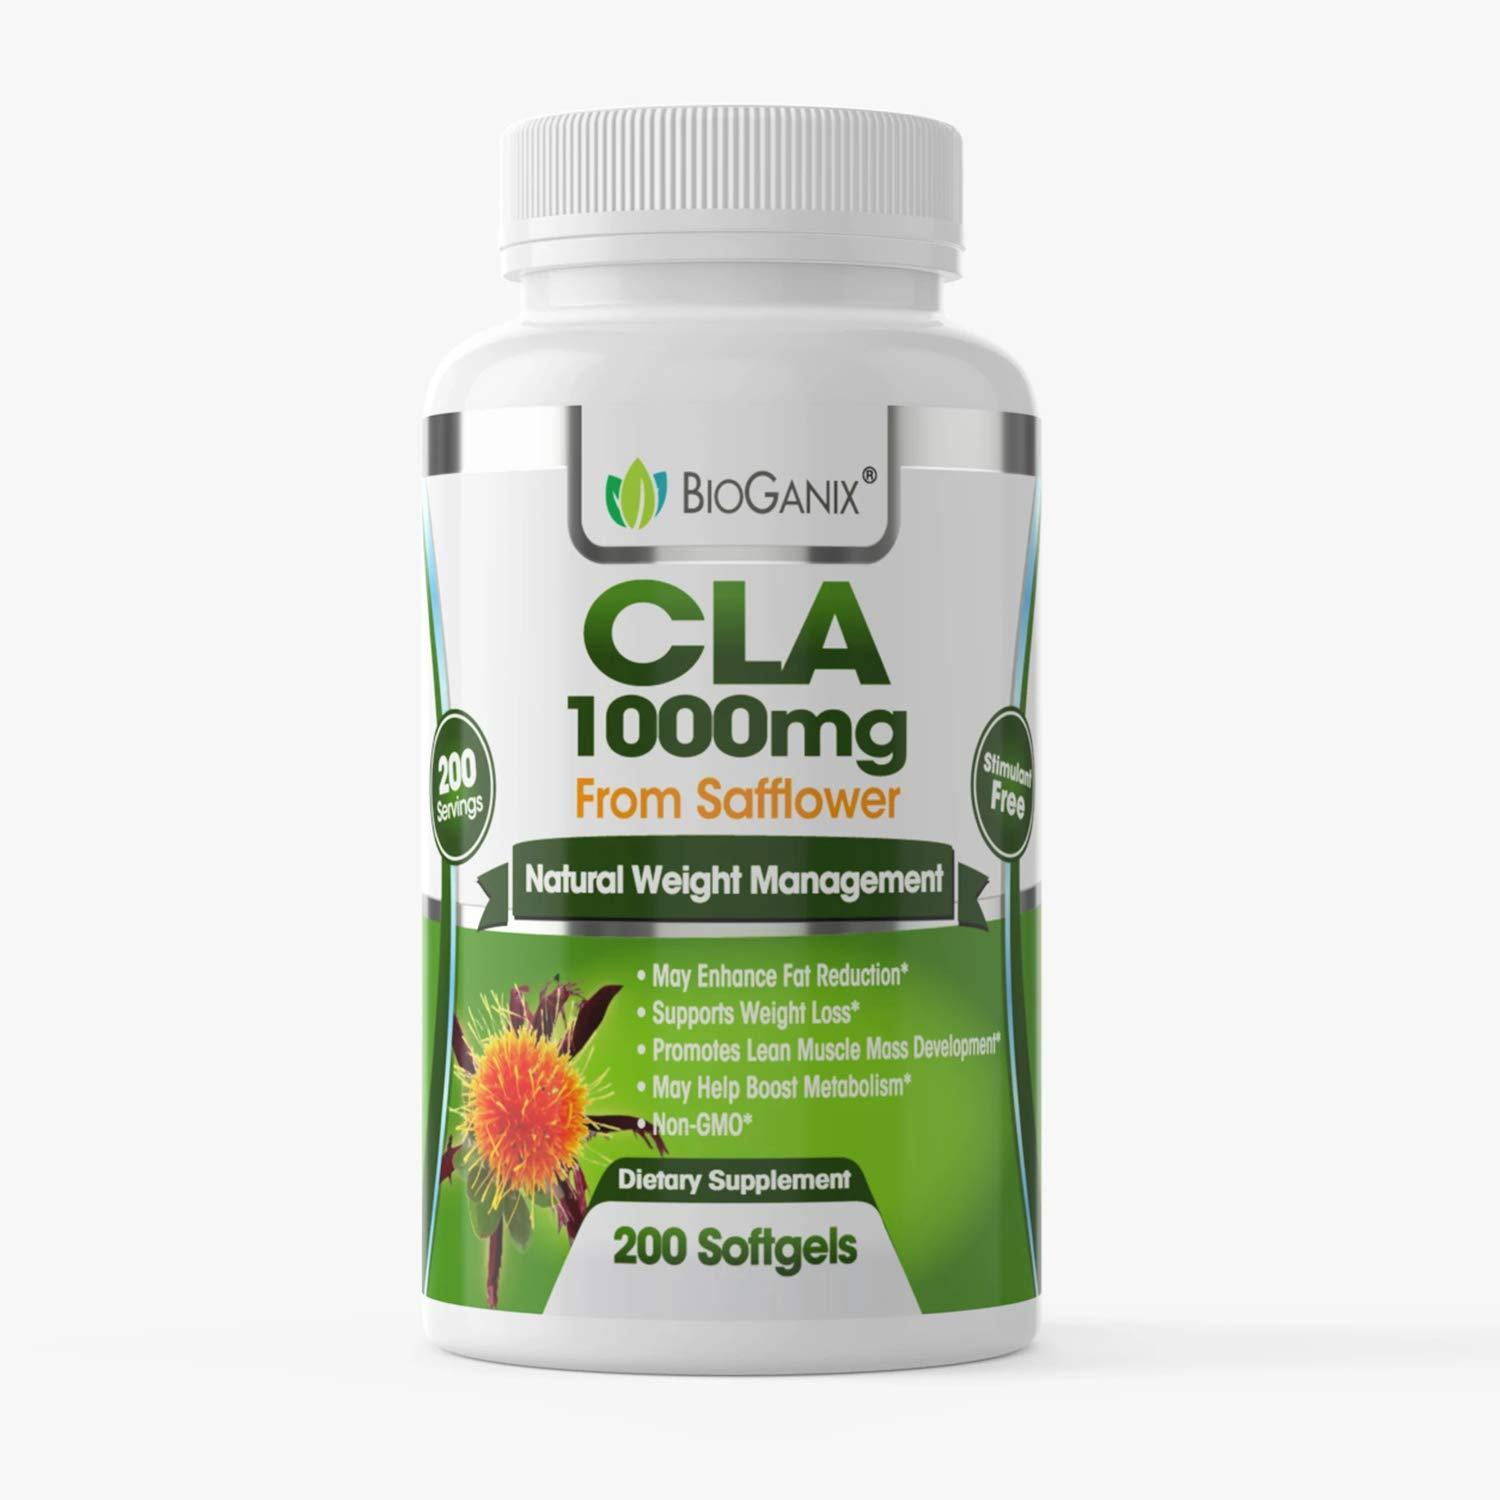 BioGanix CLA 1000 mg Safflower Oil - Belly Fat Burner and Weight Loss Supplements - Metabolism Booster, Muscle Mass Enhancement - Gluten Free, Non-GMO - Conjugated Linoleic Acid Pills - 200 Softgel